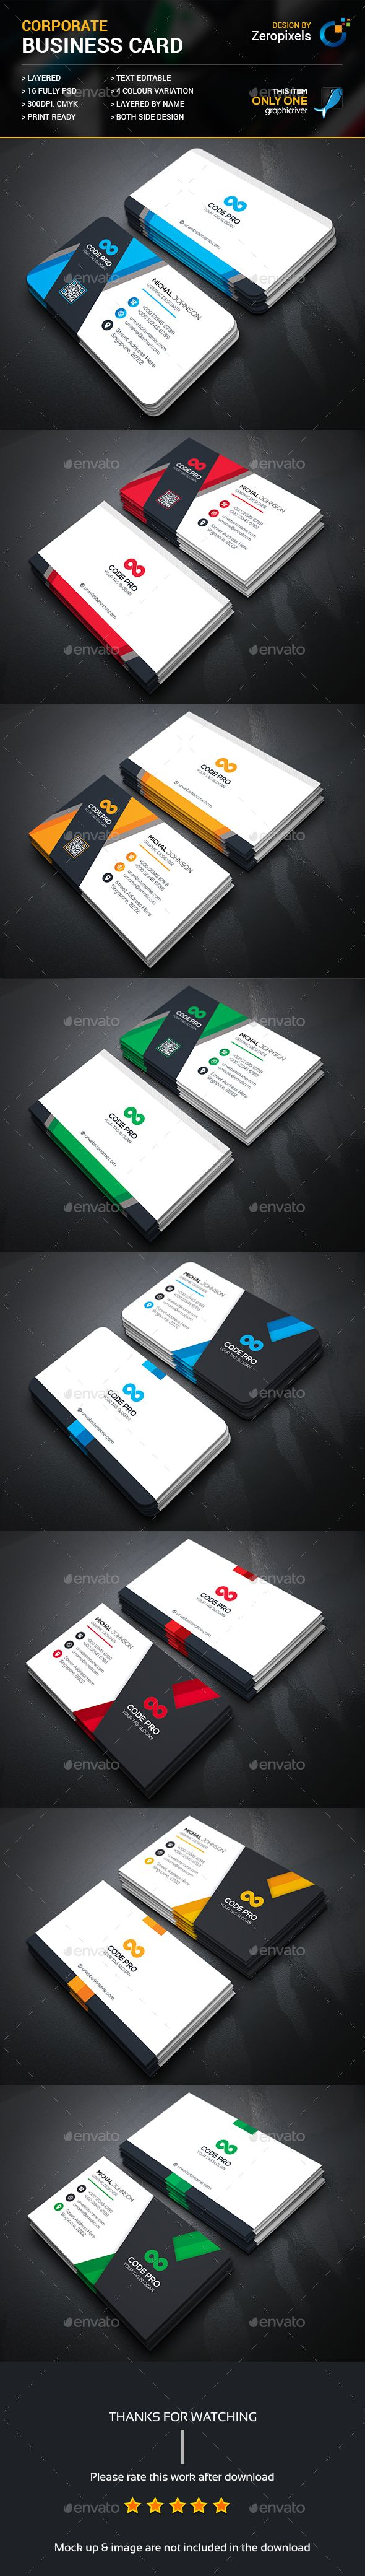 Business Card Templates PSD Bundle. Download here: https://graphicriver.net/item/business-card-bundle/17168001?ref=ksioks